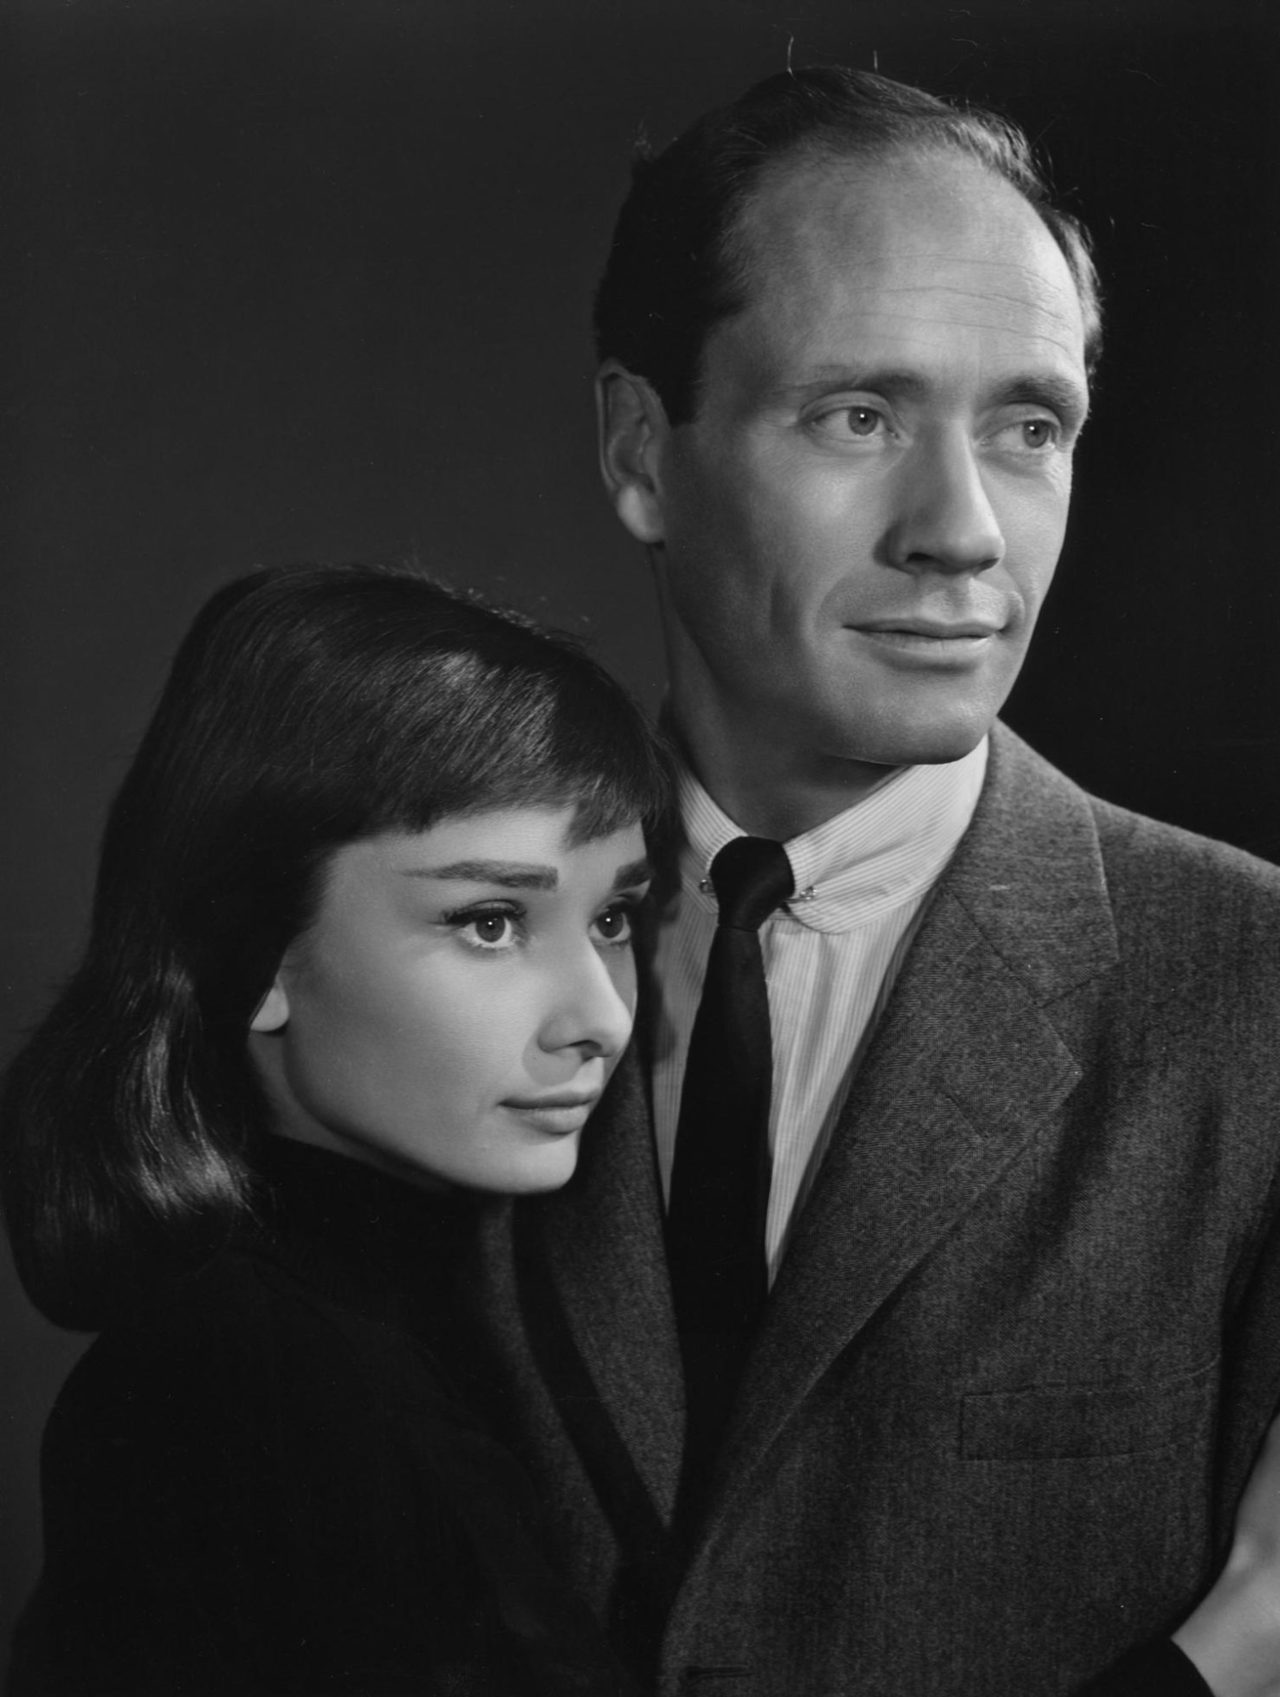 Audrey Hepburn and Mel Ferrer photographed by Yousuf Karsh on Mar 23, 1956.